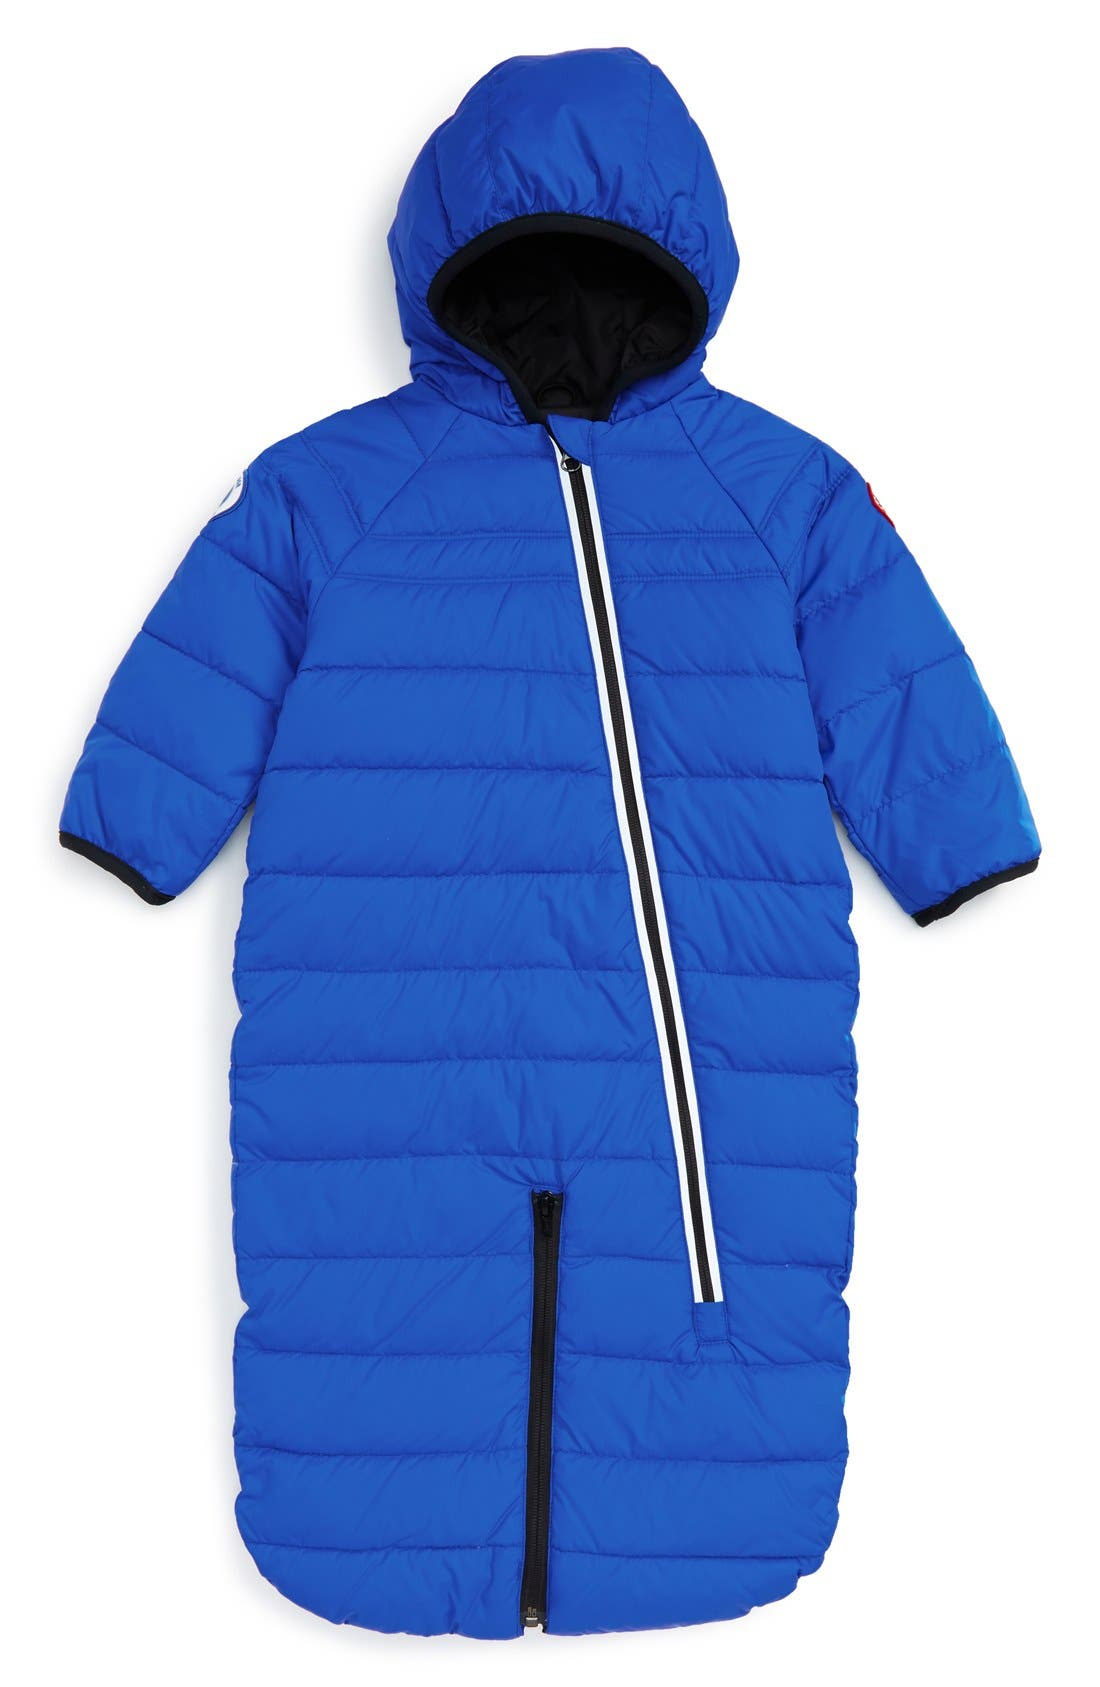 CANADA GOOSE Pup Water Resistant Hooded Down Bunting